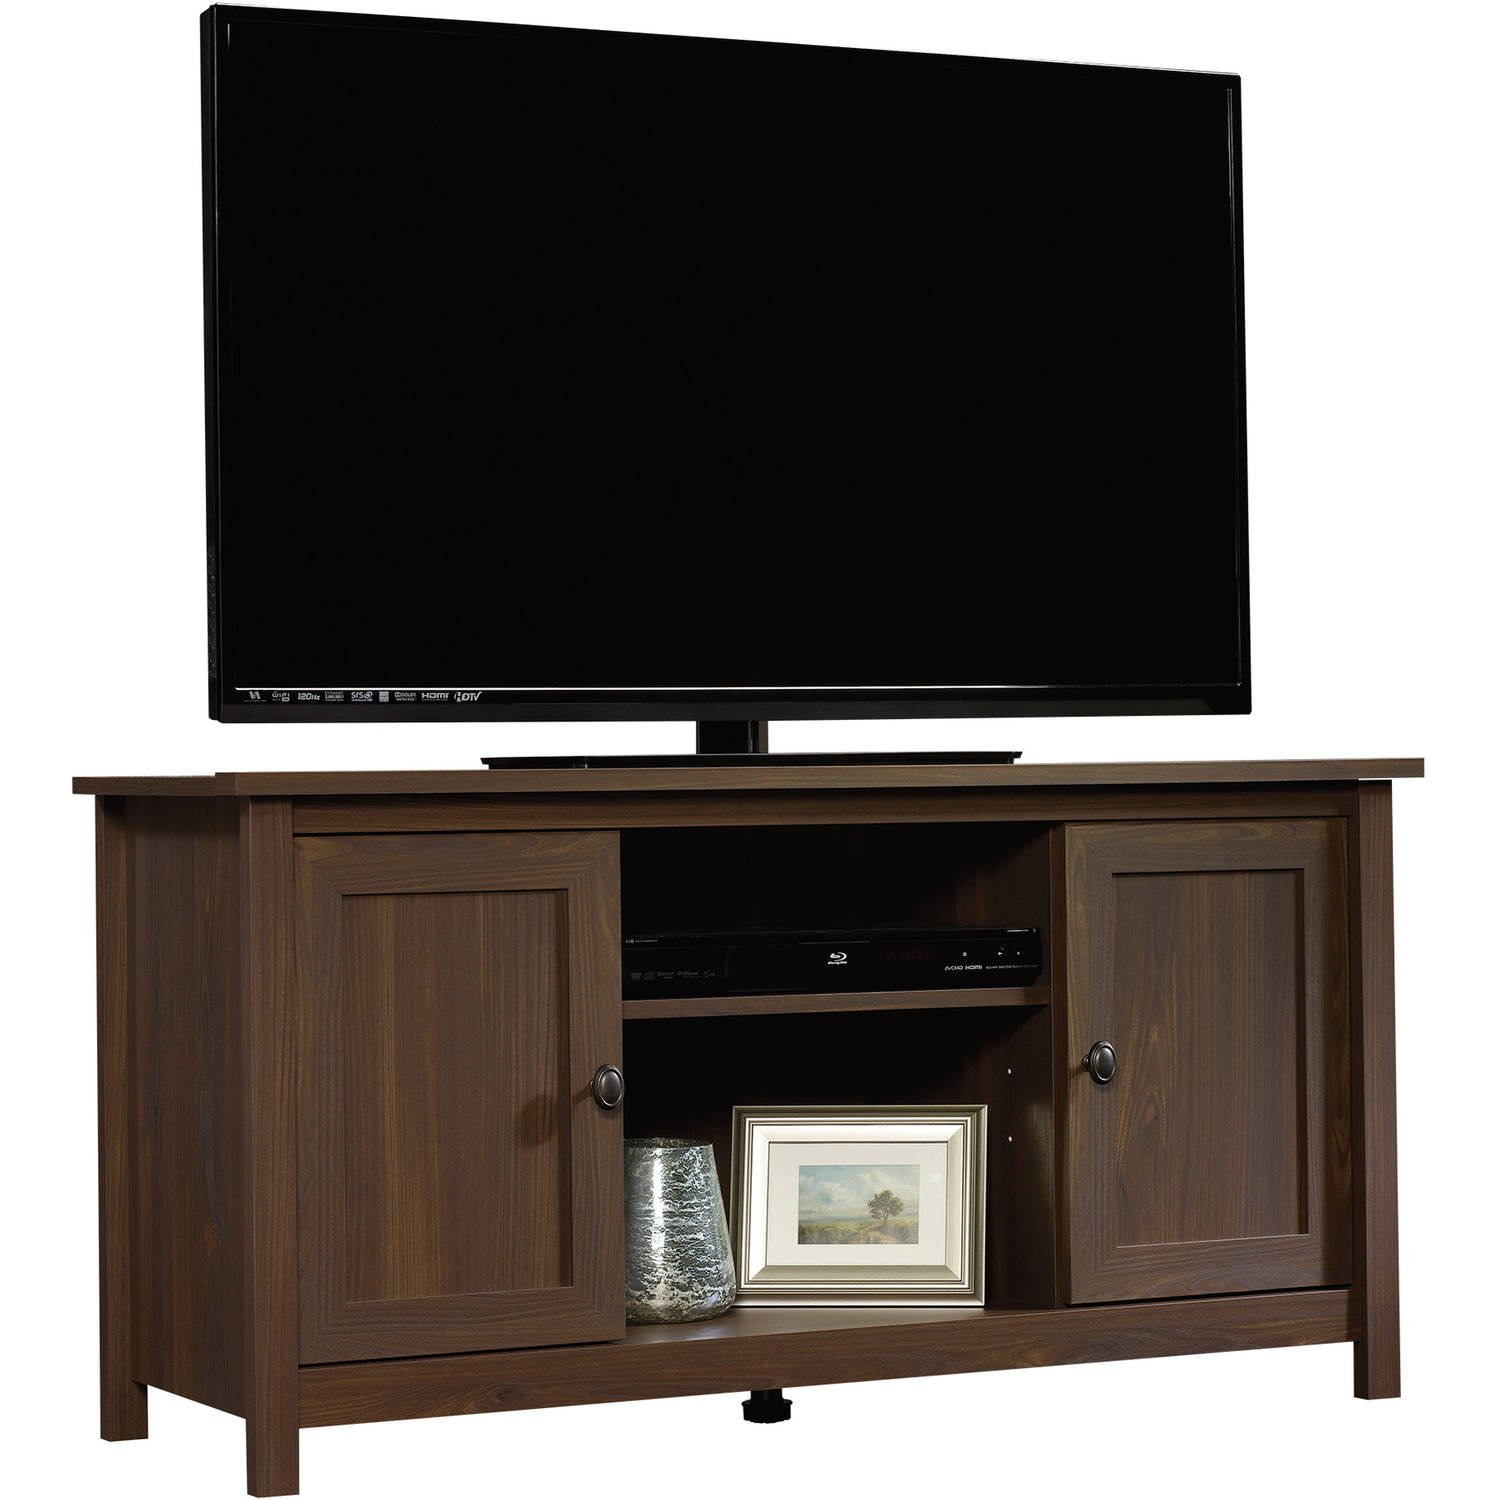 Better Homes & Gardens Lafayette TV Stand for TV's up to 47\ by Sauder Woodworking